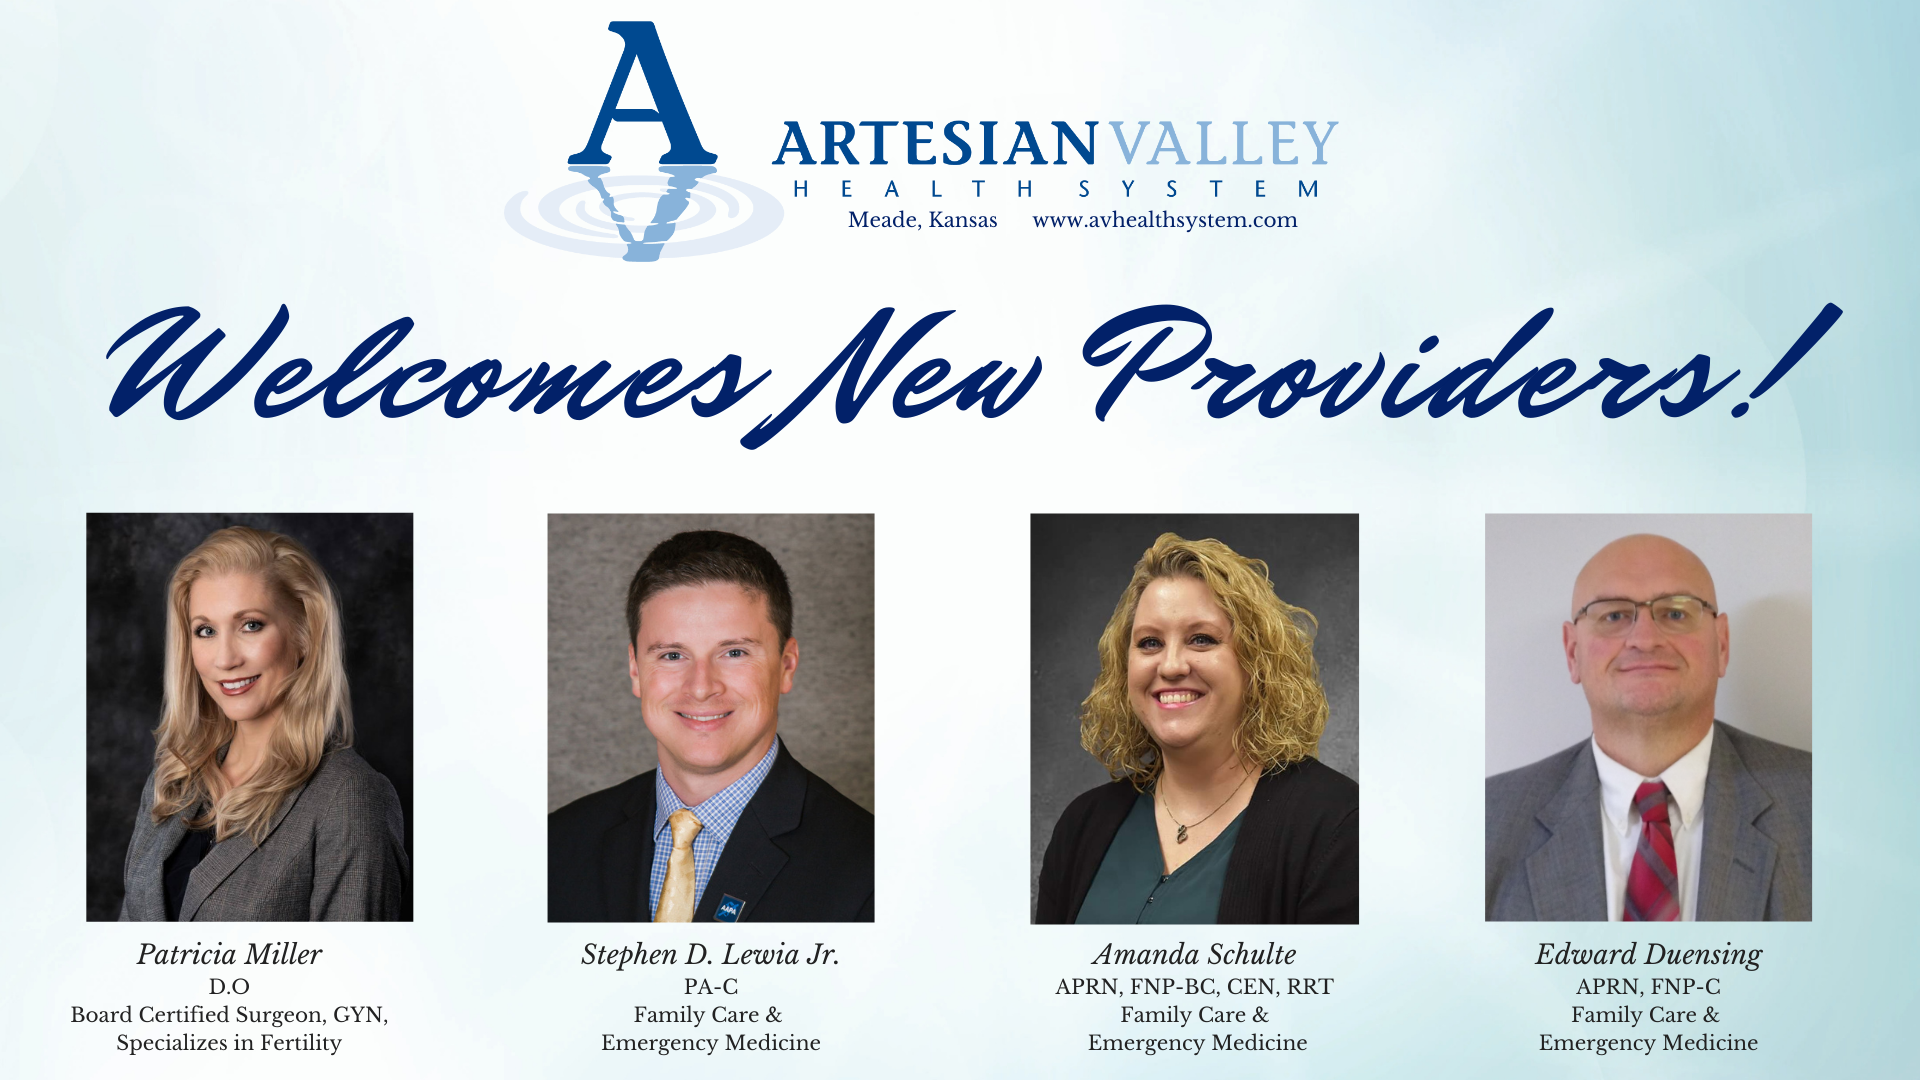 Artesian Valley Health System Welcomes New Providers